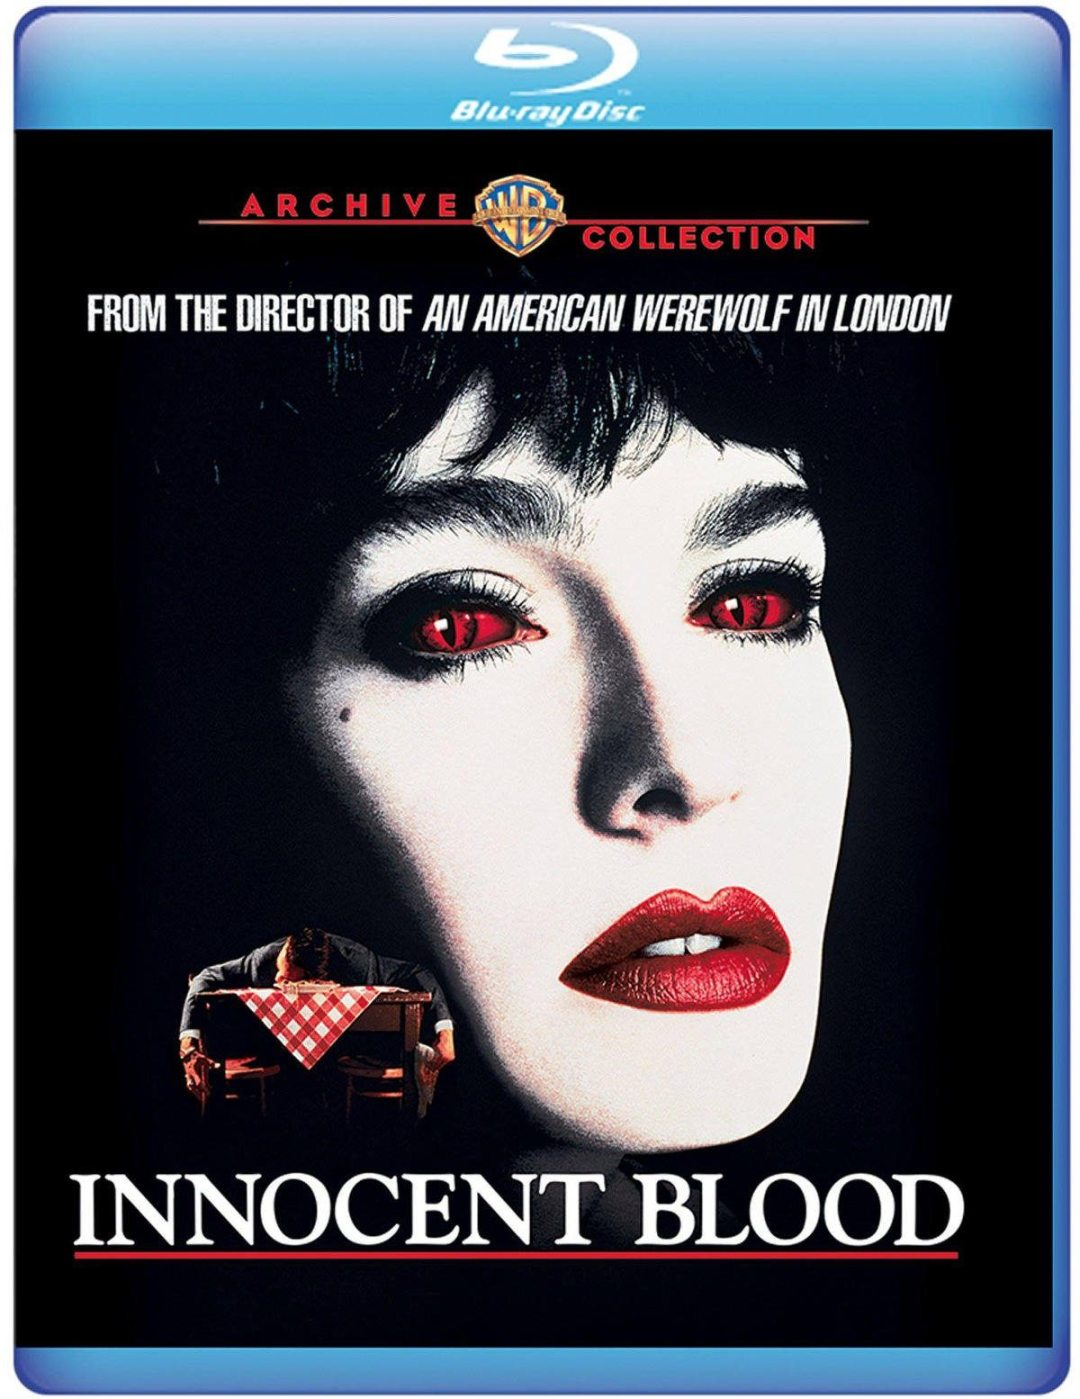 It's Time to Bring Back Some 'Innocent Blood'